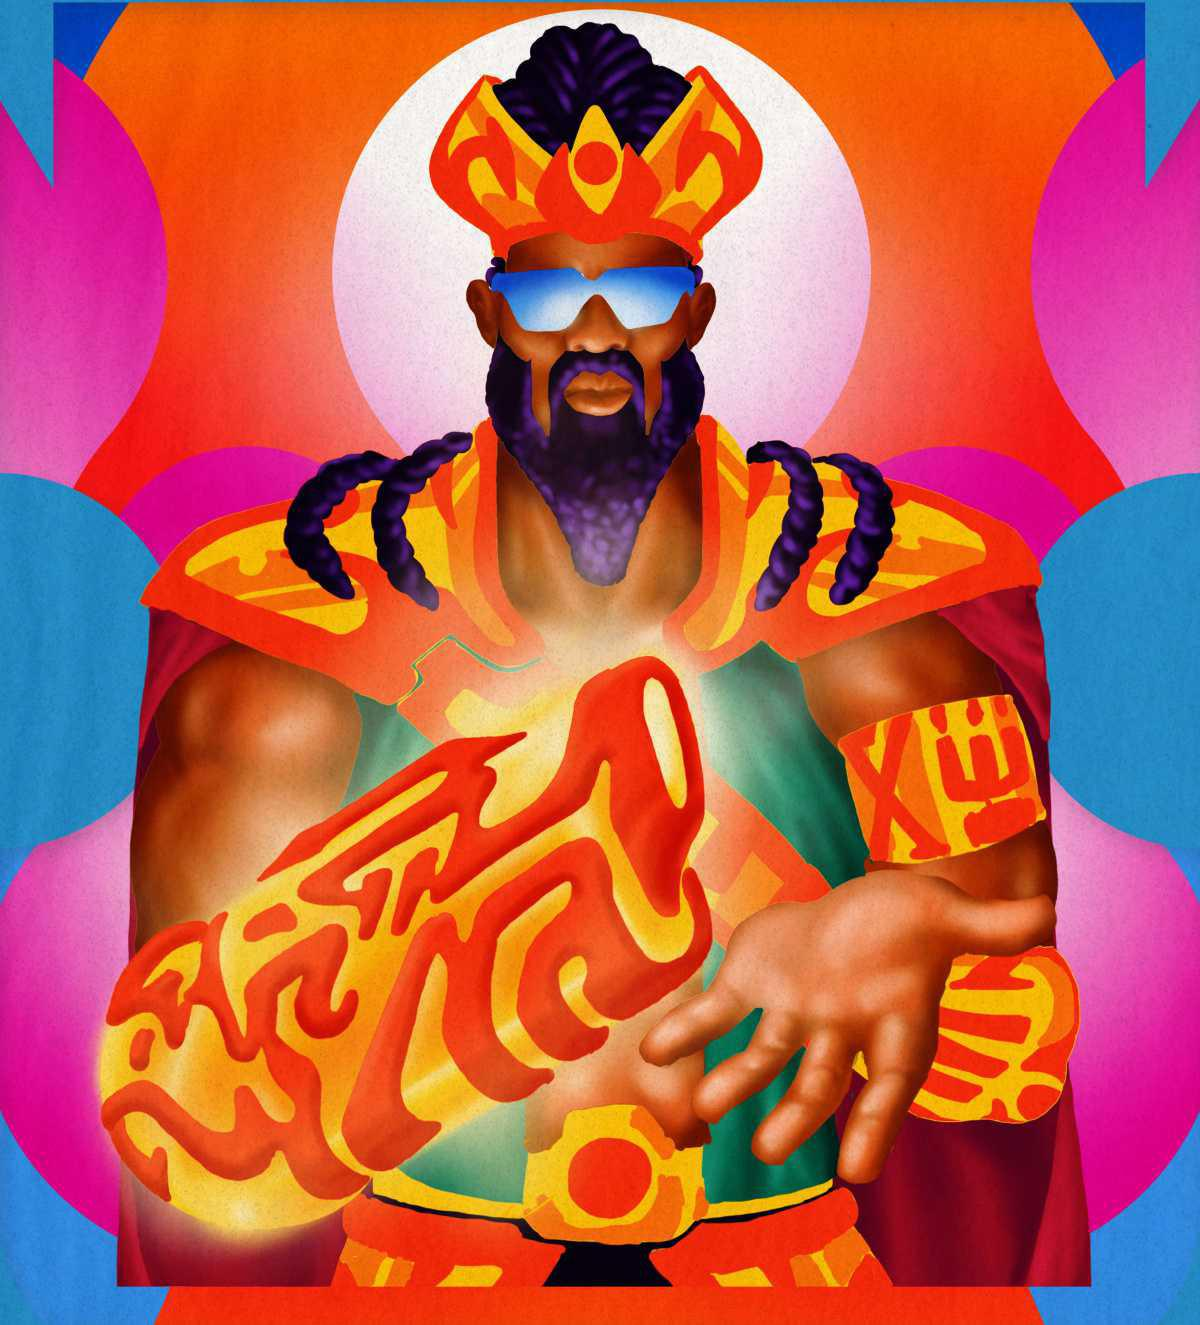 [D-7] Major Lazer Africa Tour To Culminate in Paradise Island Mauritius